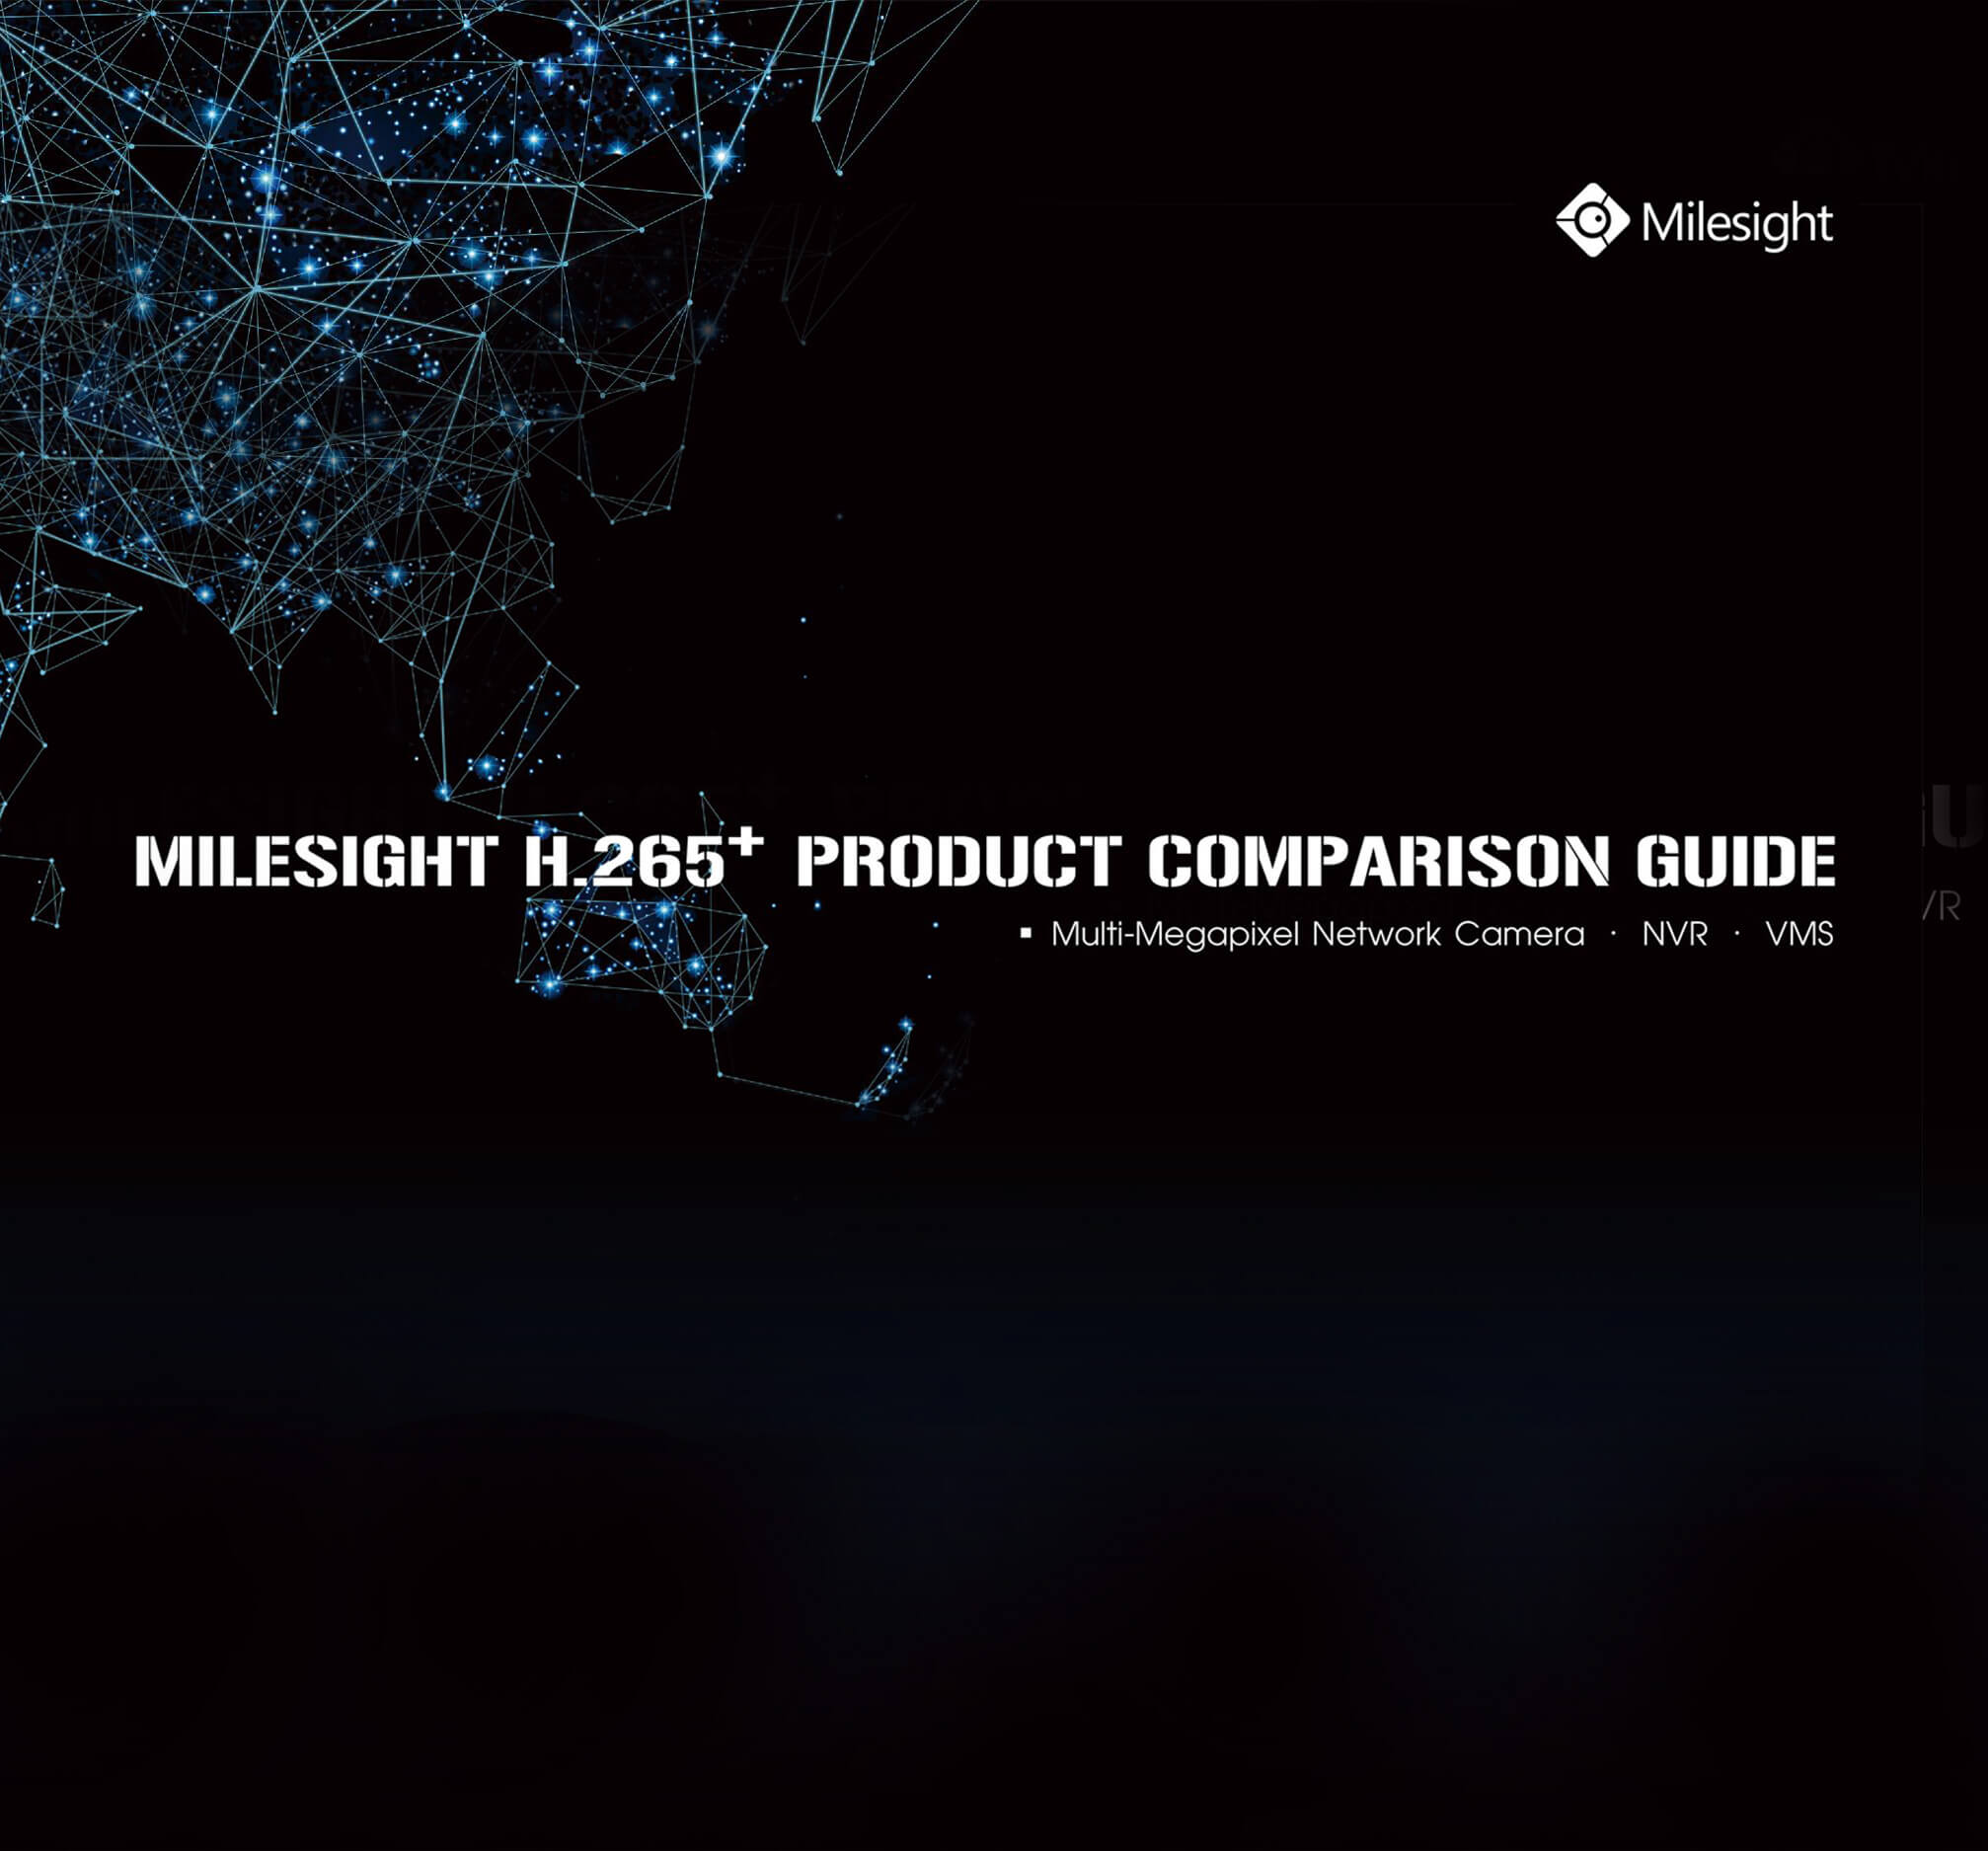 Milesight Product Comparison Guide